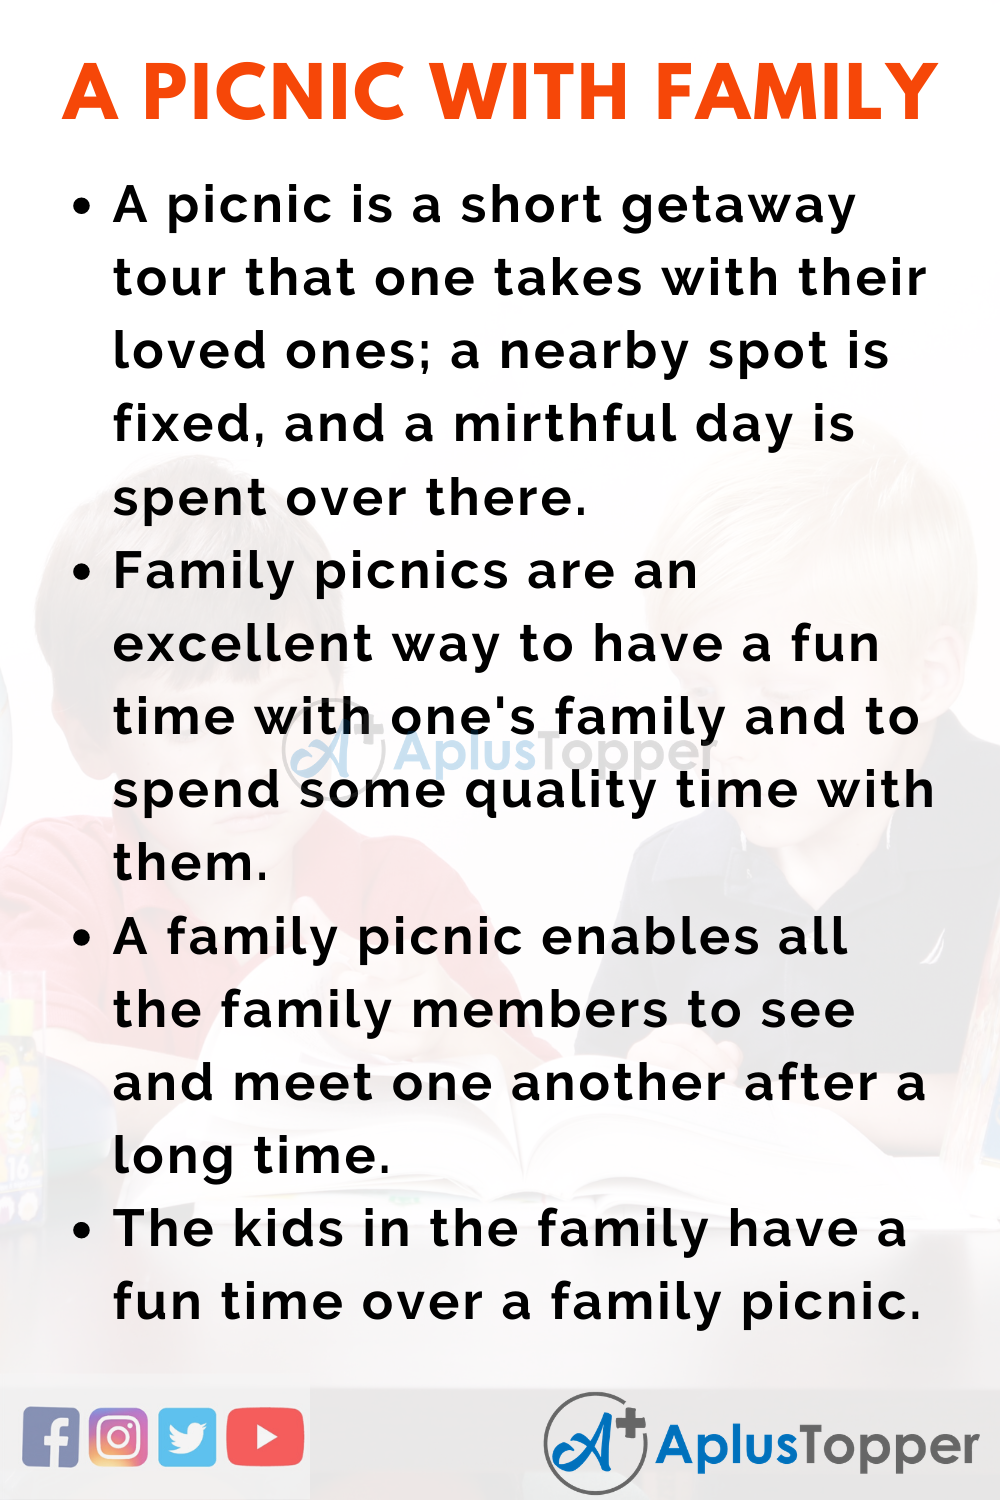 A Picnic with Family Essay